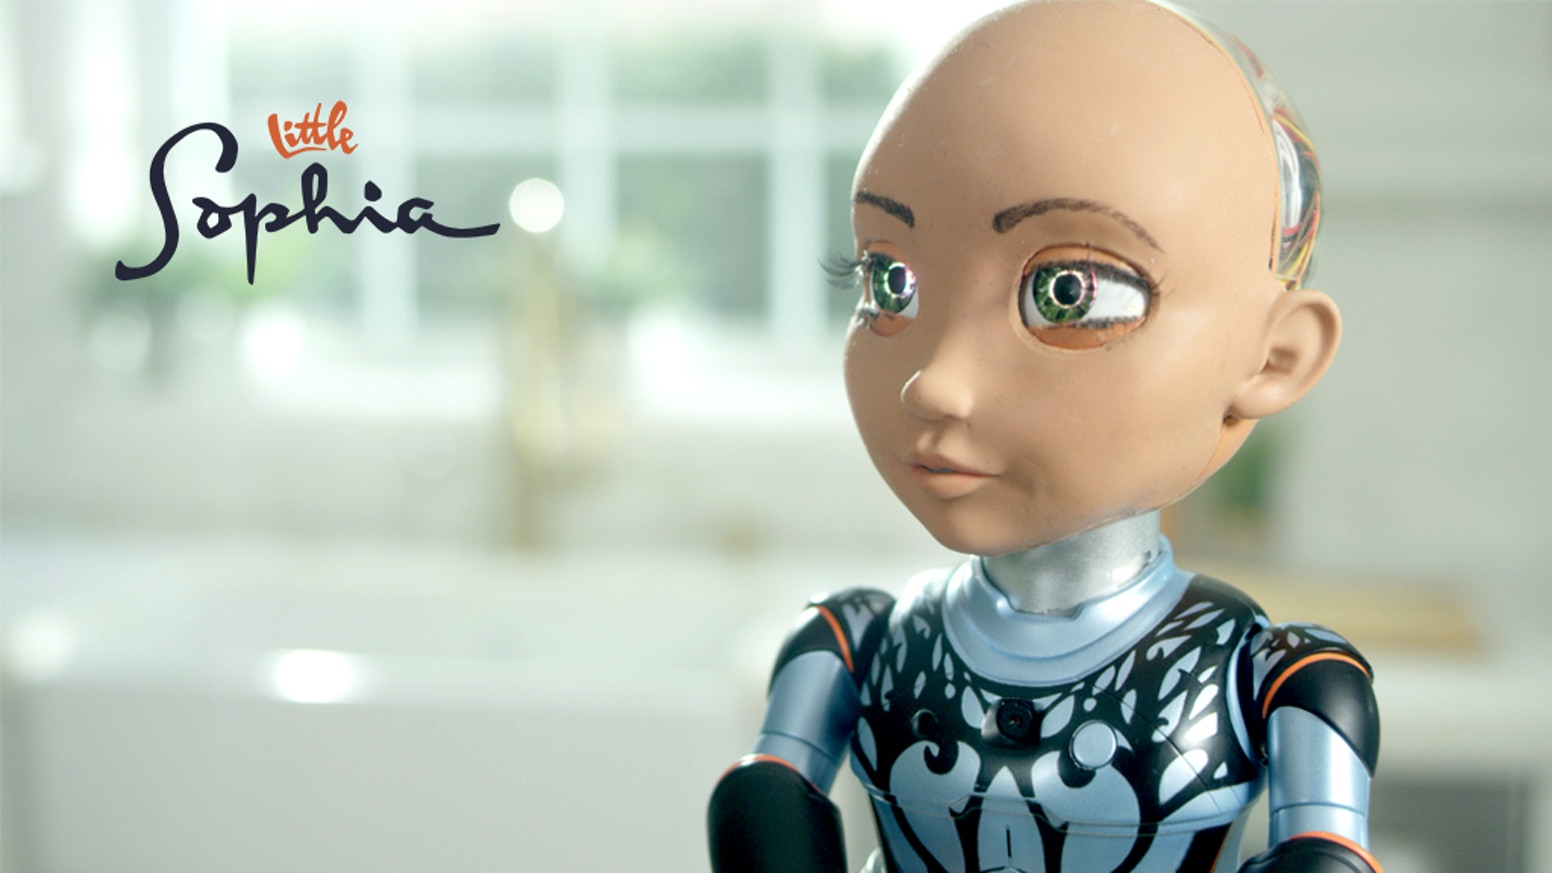 Introducing Little Sophia, Sophia the Robot's little sister, and a new kind of STEM, AI and coding learning companion for ages 8+.